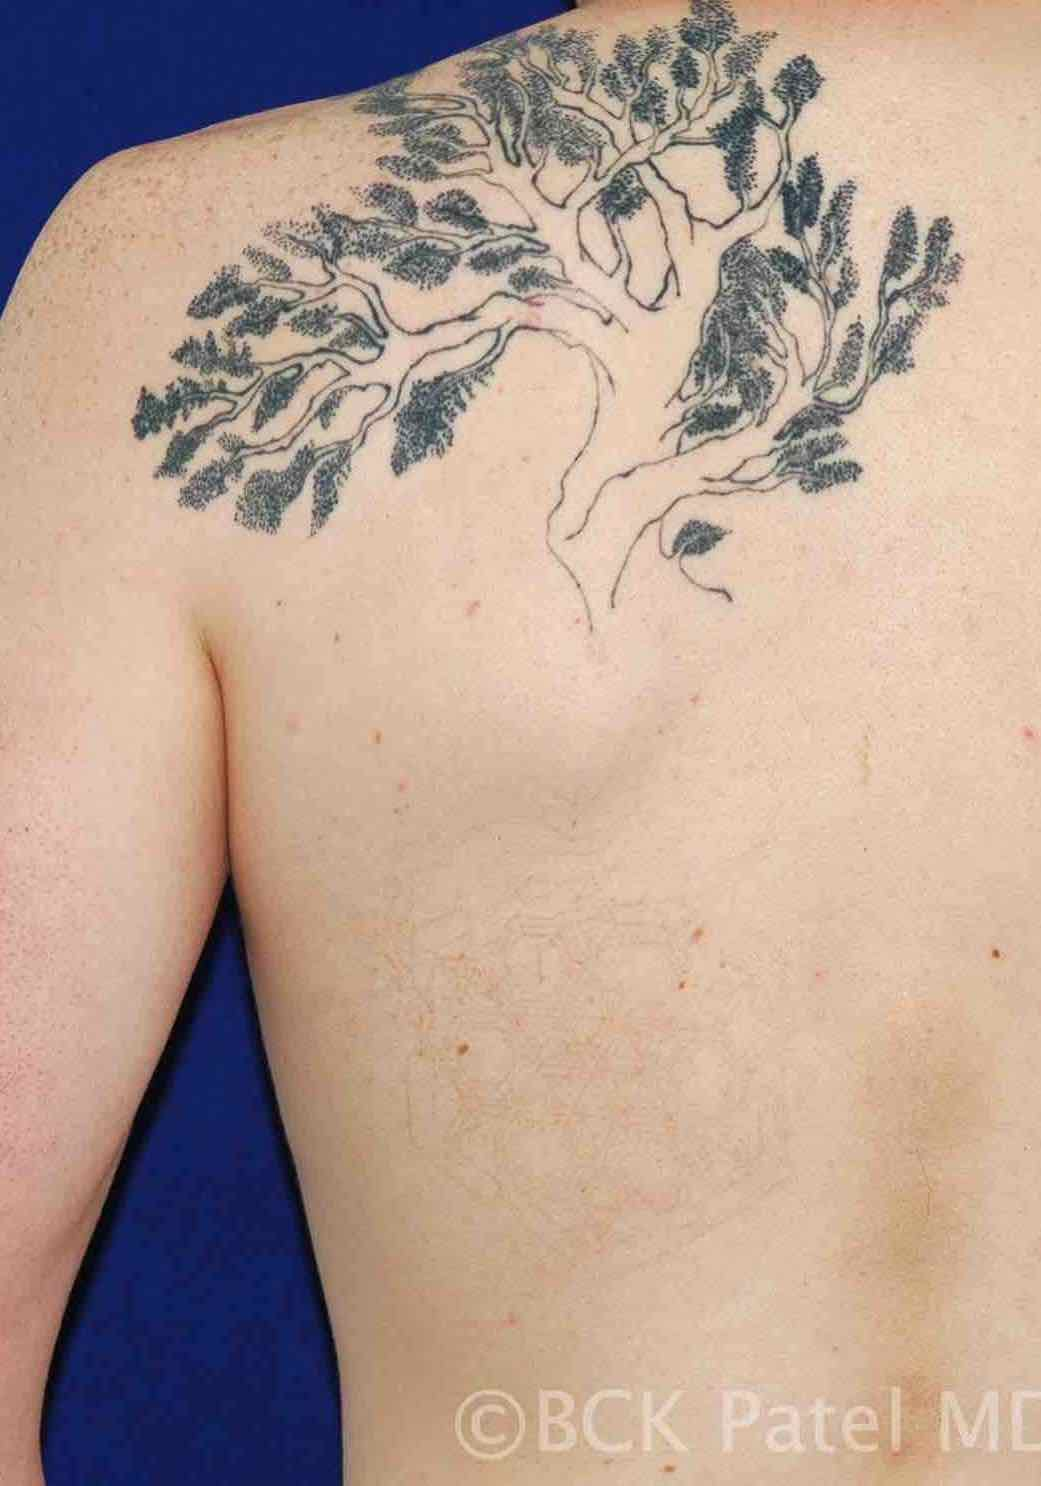 Laser tattoo removal picosecond by BCK Patel MD, FRCS